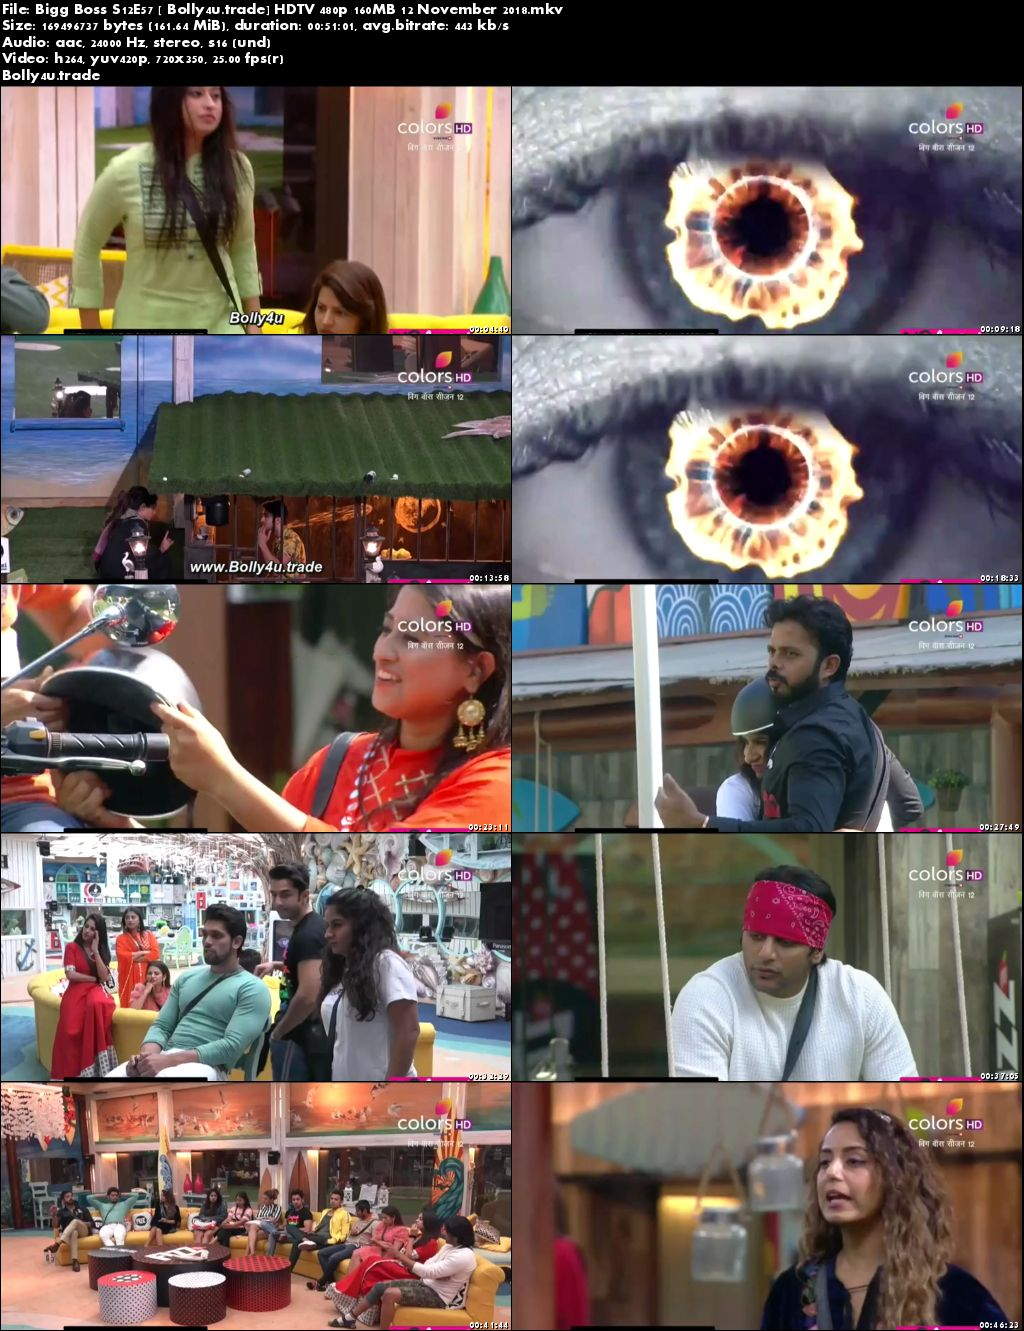 Bigg Boss S12E57 HDTV 480p 160MB 12 November 2018 Download